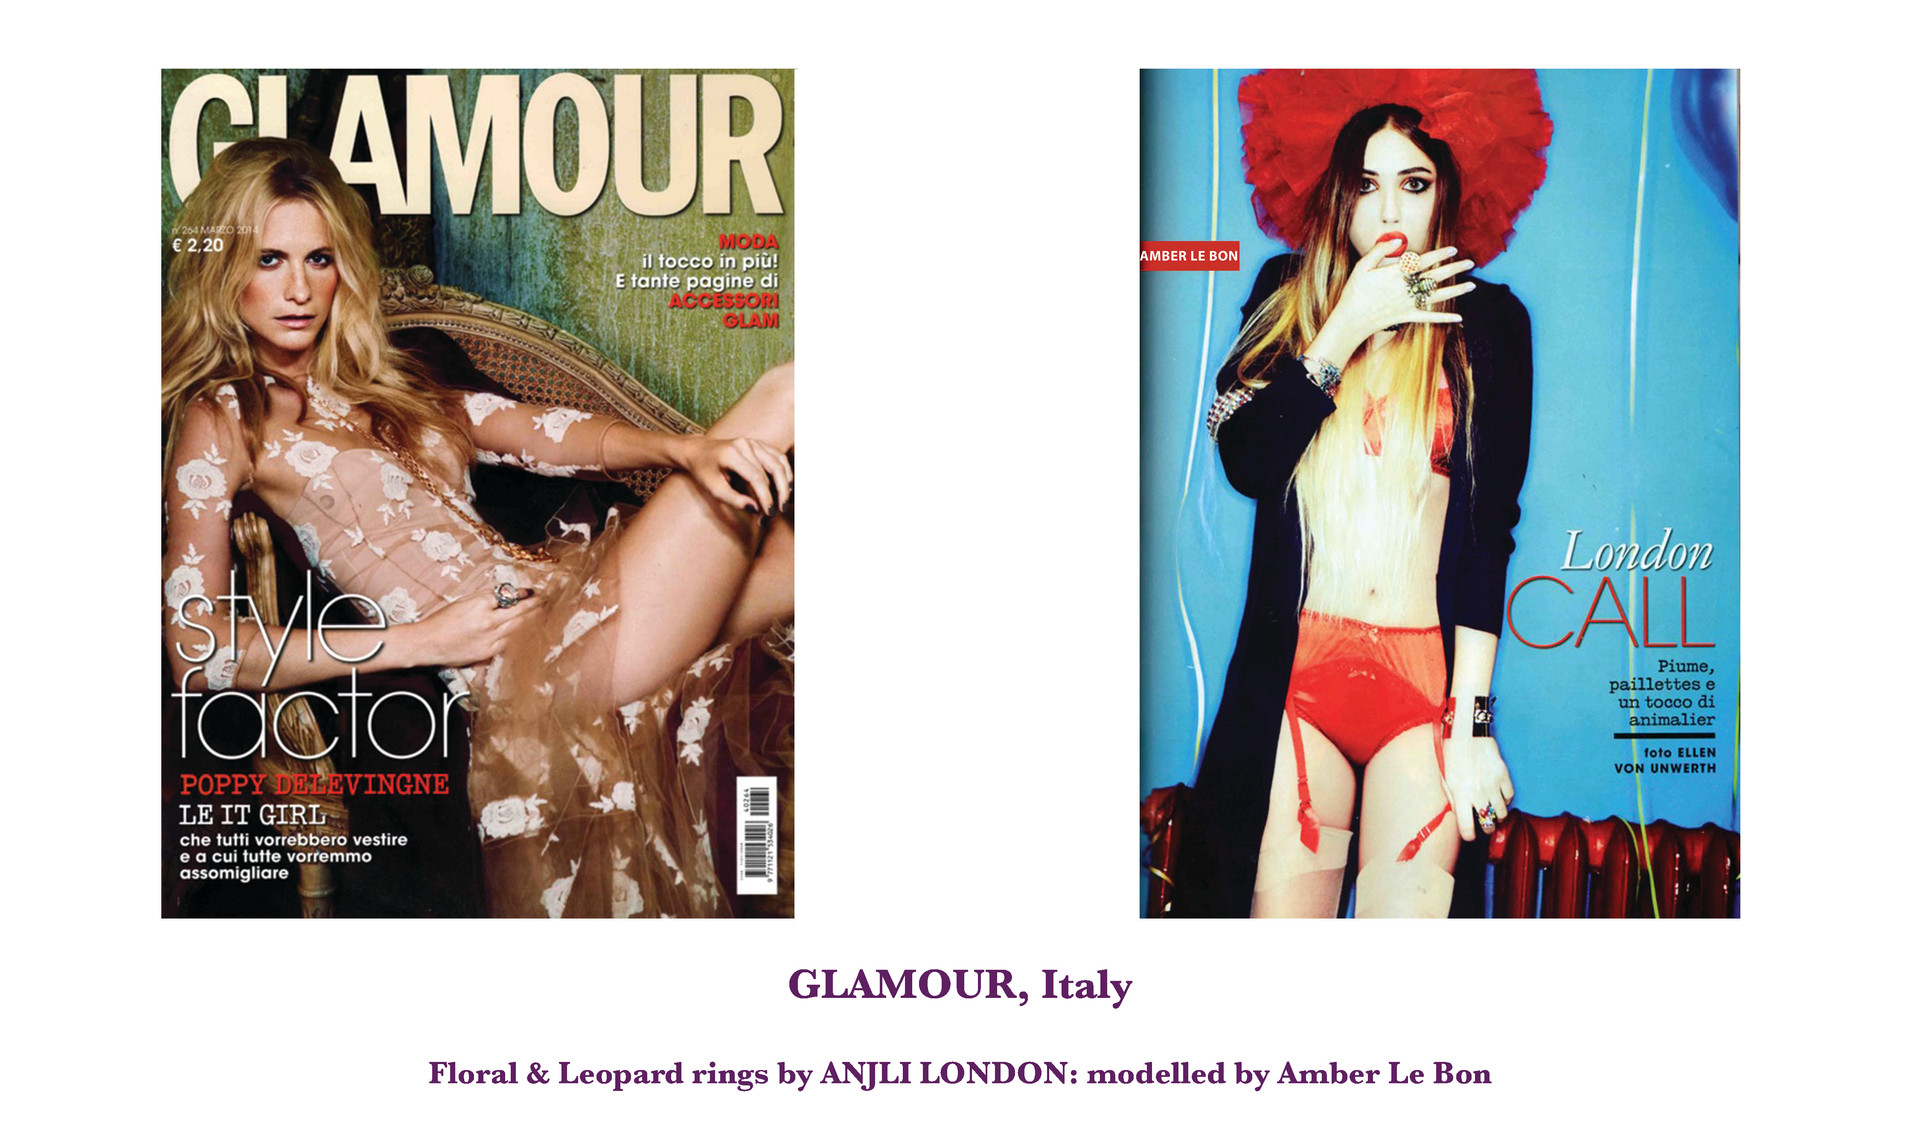 GLAMOUR, Italy